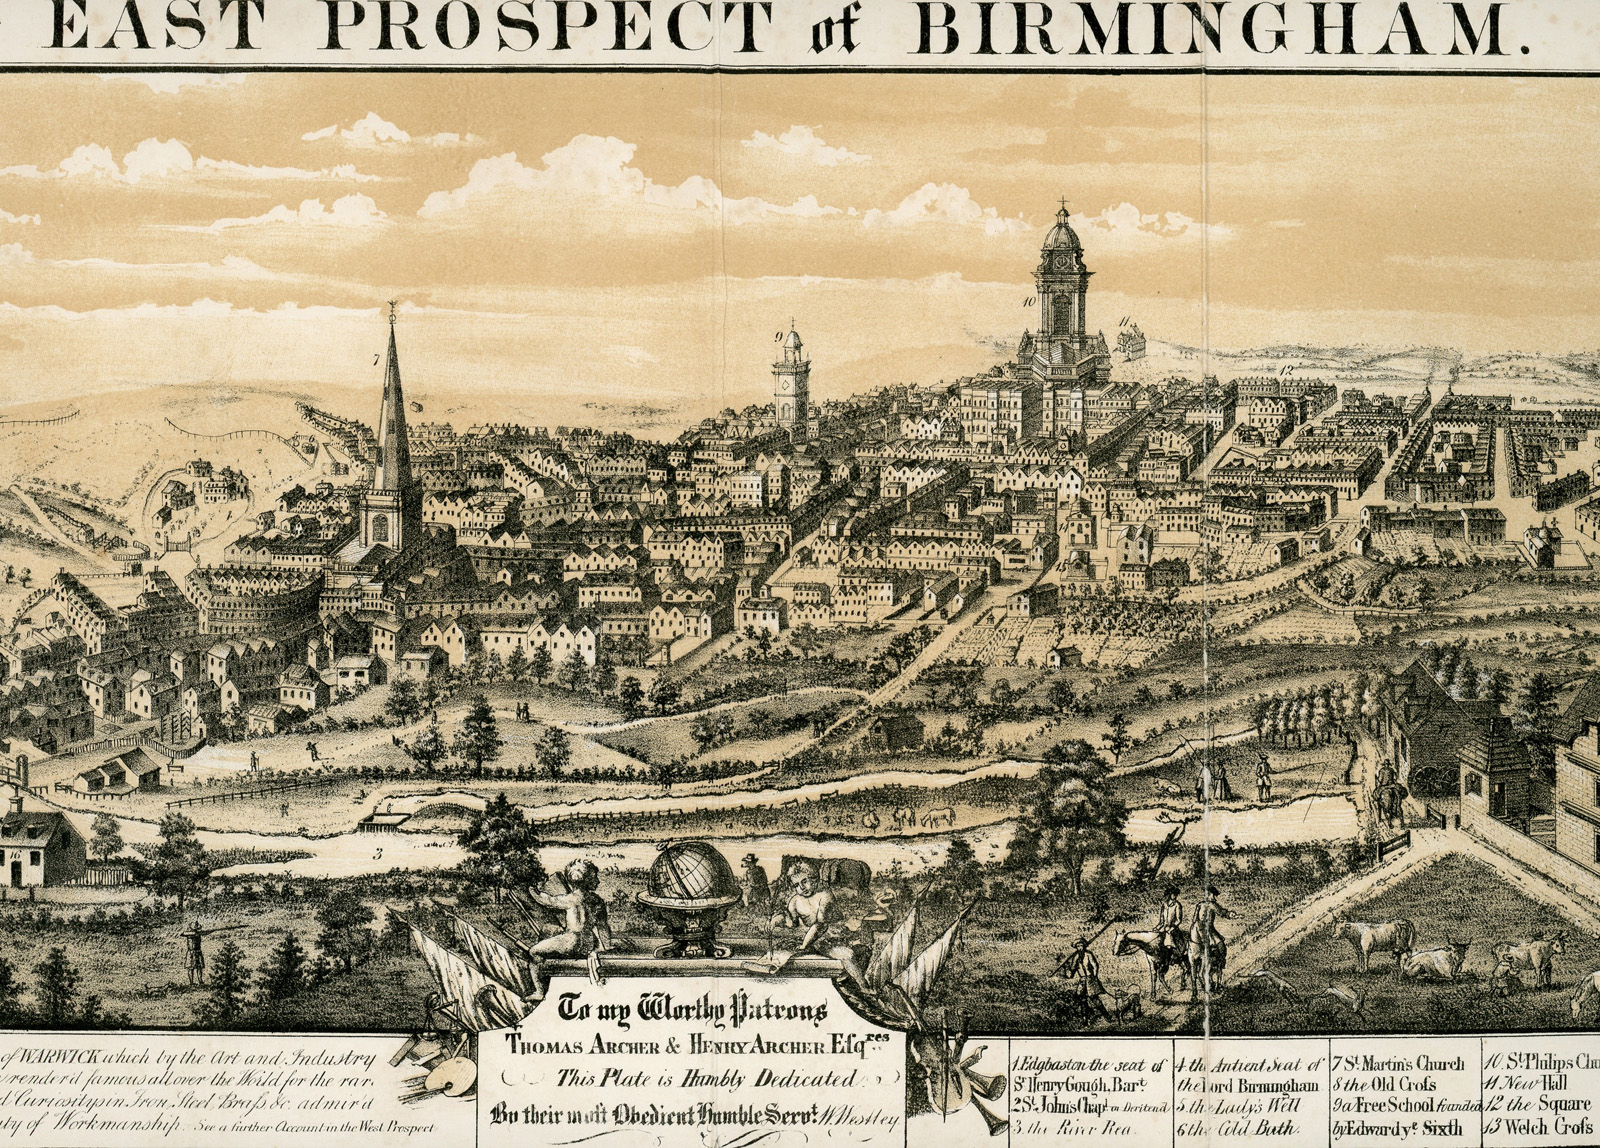 The East Prospect of Birmingham